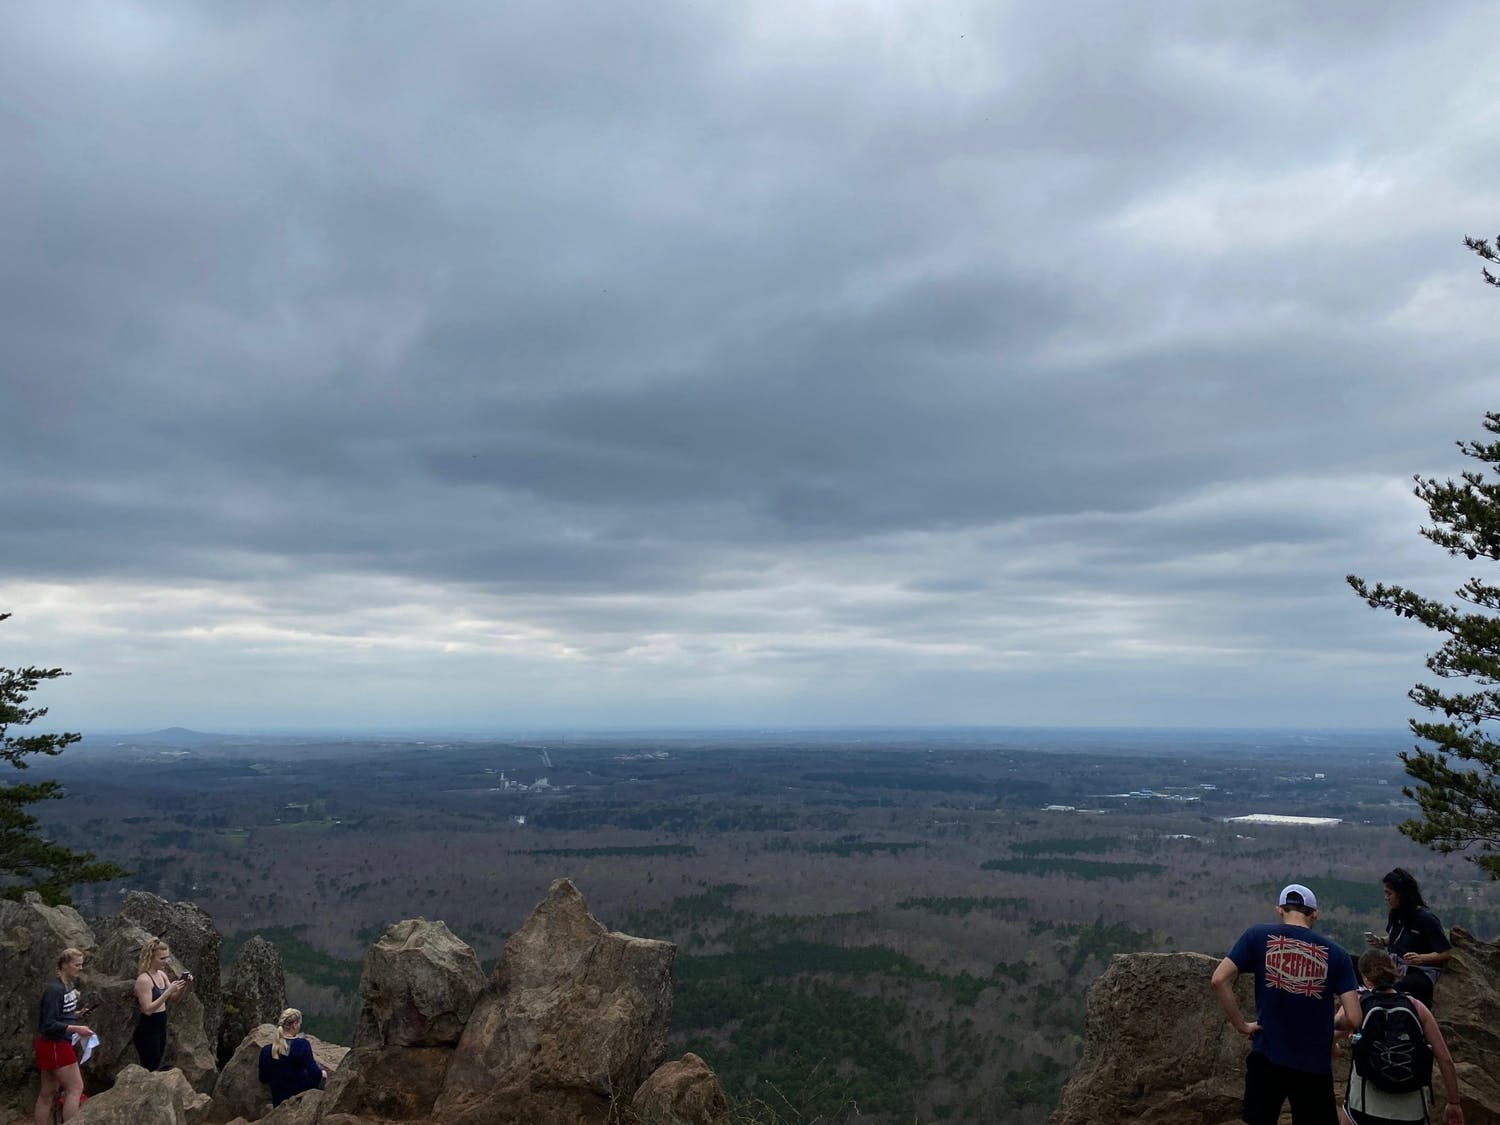 Ethan Runyan and friends hiked a trail on Crowder Mountain near Charlotte over the extended spring break.